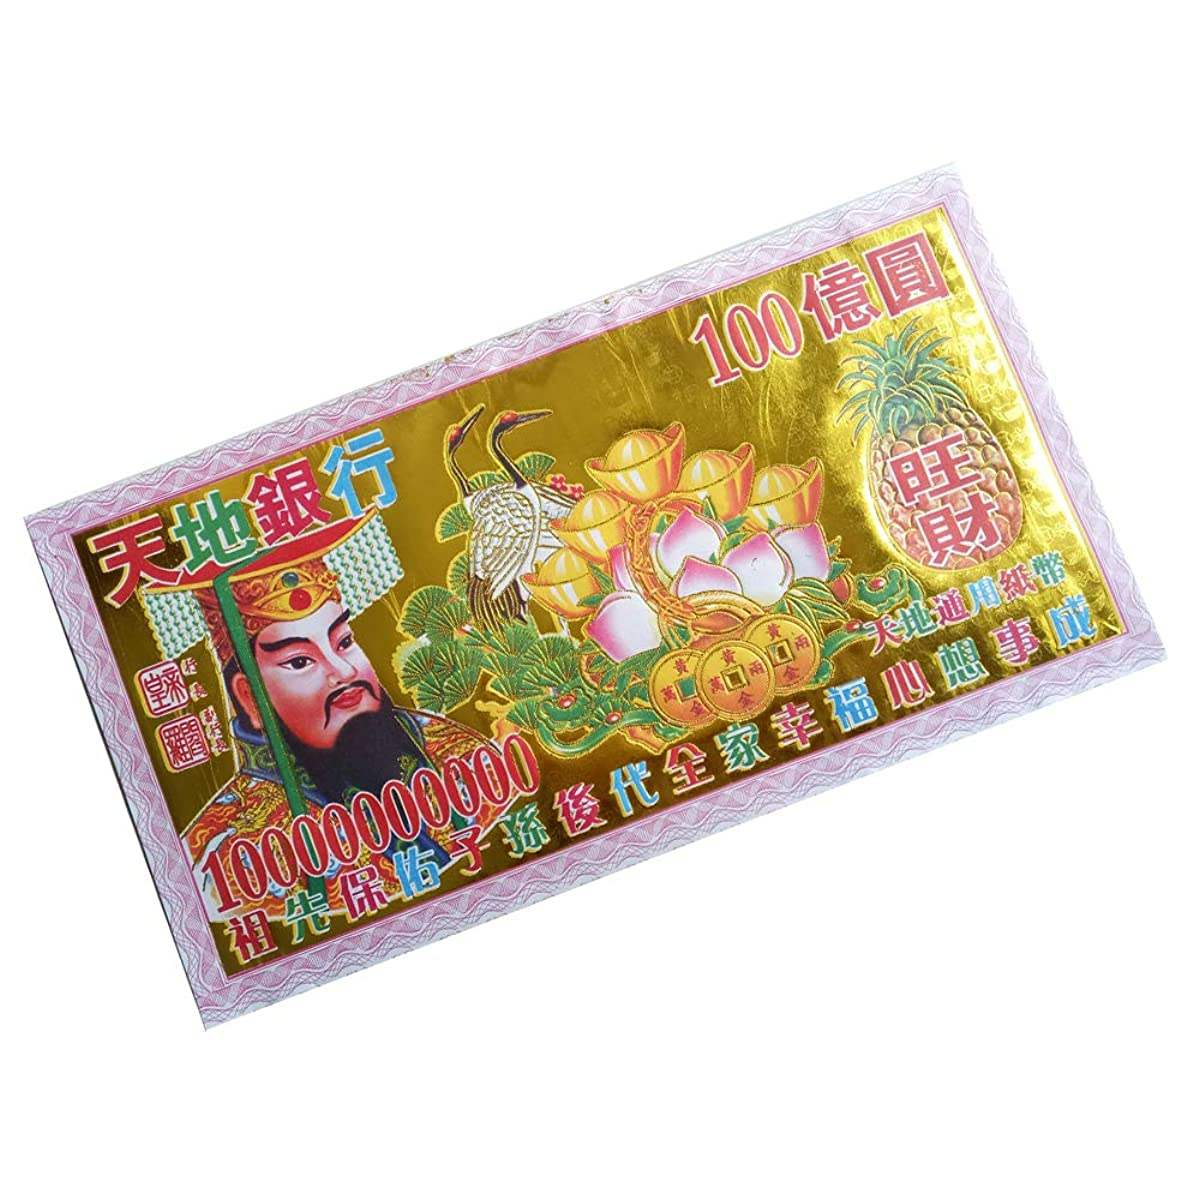 Hell Notes Money (Chinese Joss Paper) $10,000,000,000 Gold Foil Incense Paper Ancestor, 30pcs